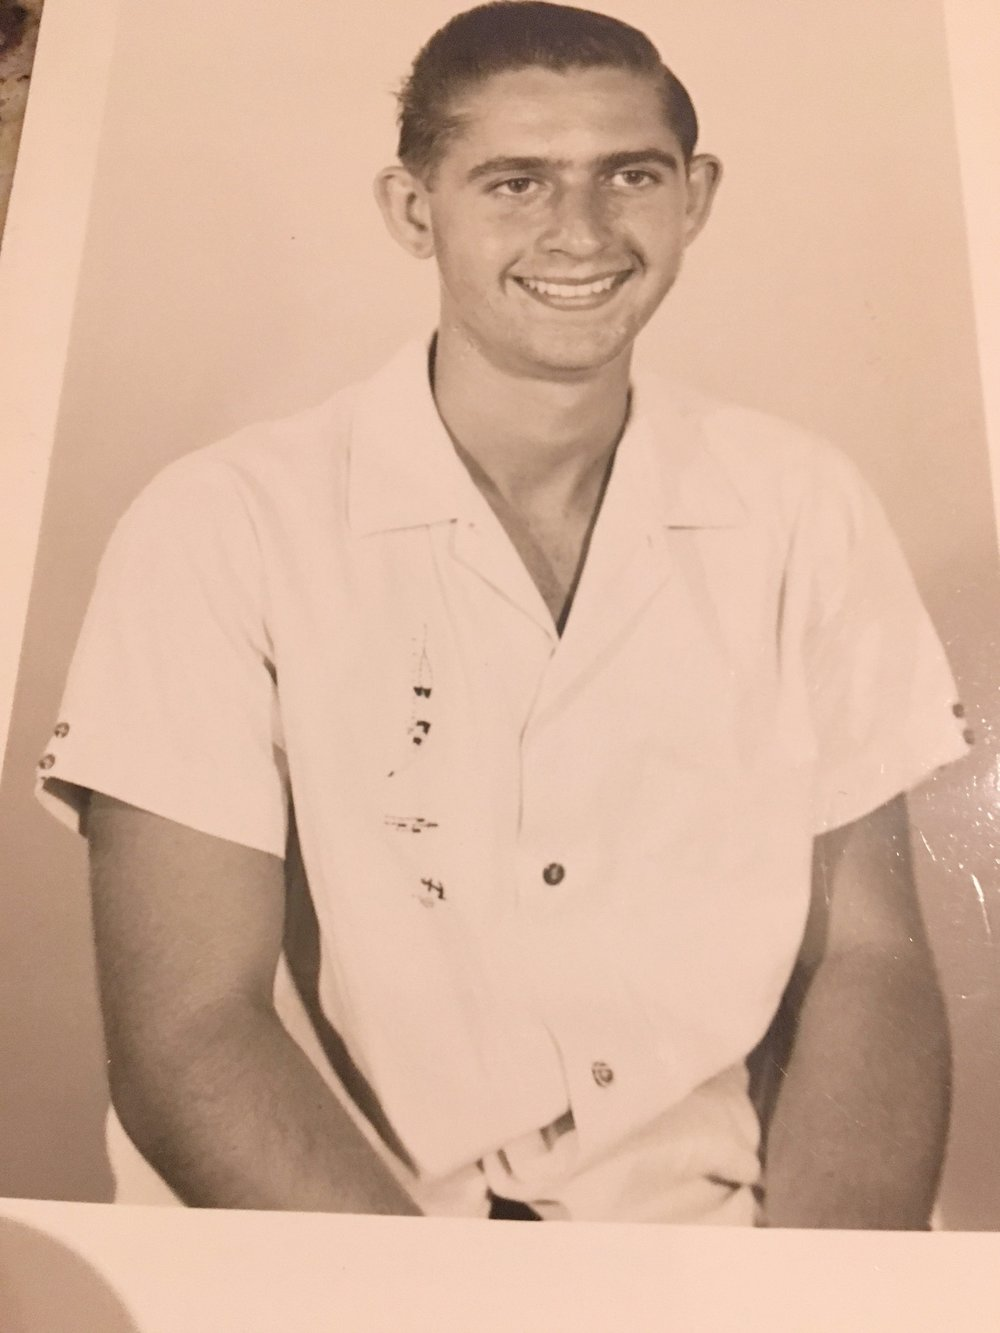 My father at age 14